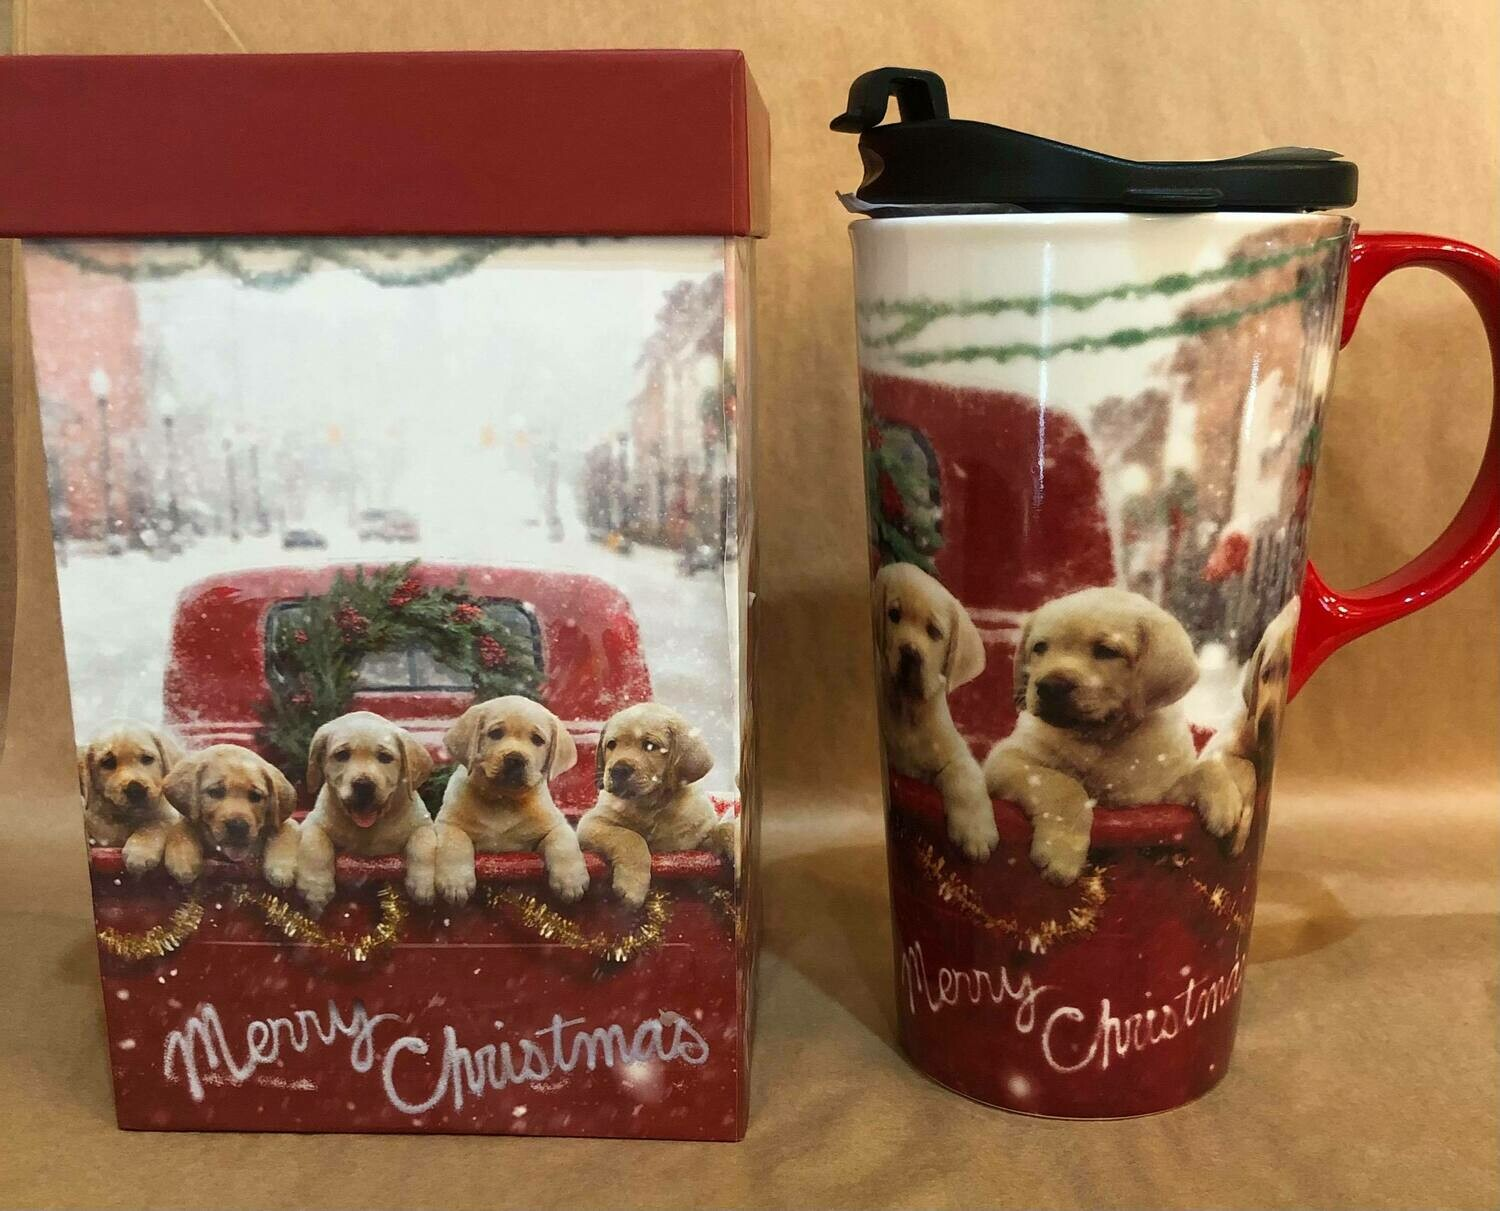 Merry Christmas Puppies Travel Mug